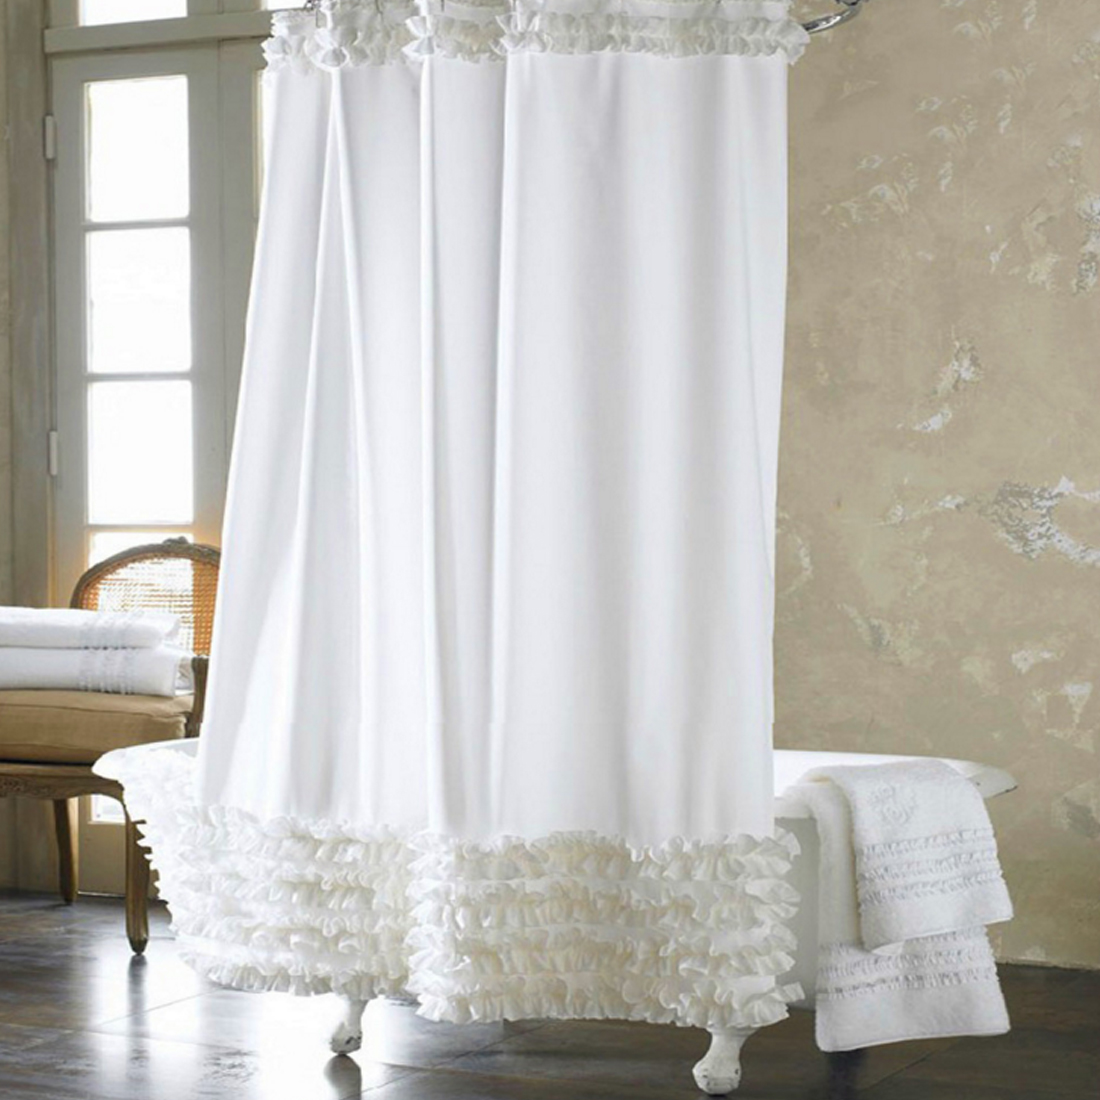 Image 5 - Promotions Home Decoration Bathroom Shower Curtain Waterproof Solid Polyester Fabric Lace Bath Curtain Elegant Cortina +12 Hooks-in Shower Curtains from Home & Garden